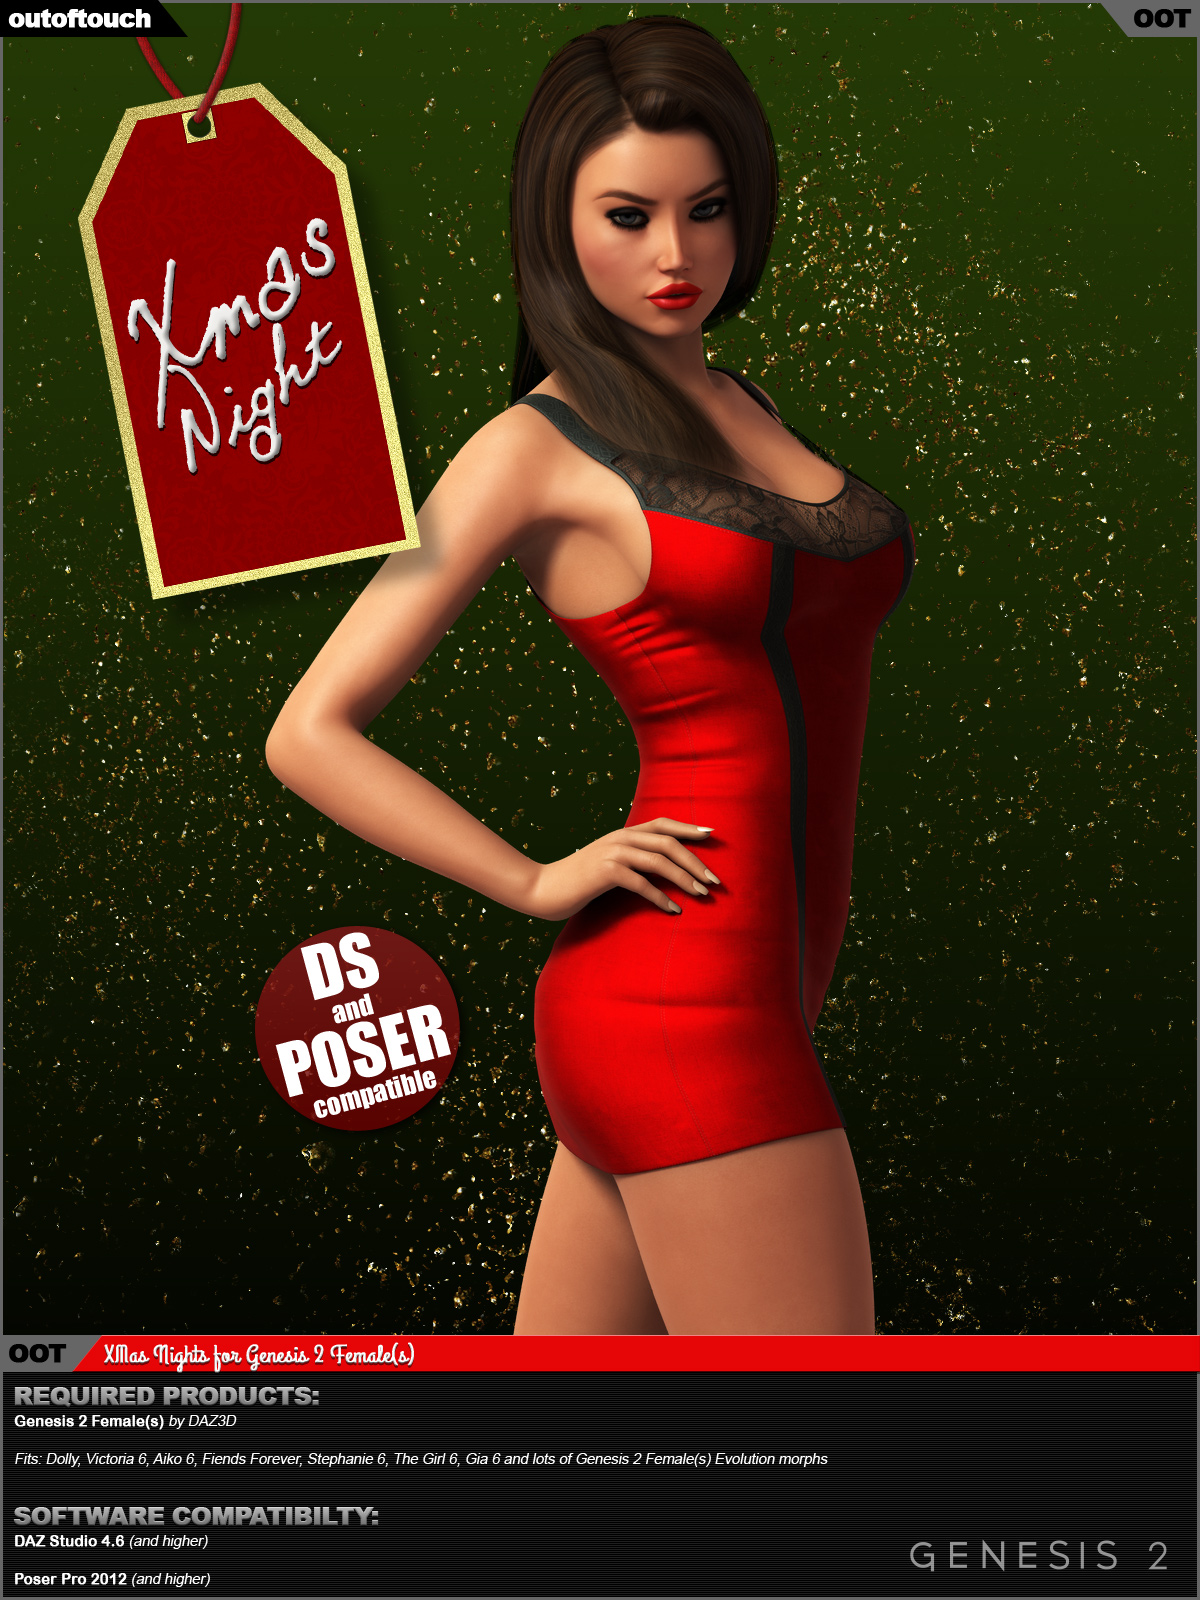 XMas Night for Genesis 2 Female(s)byoutoftouch()